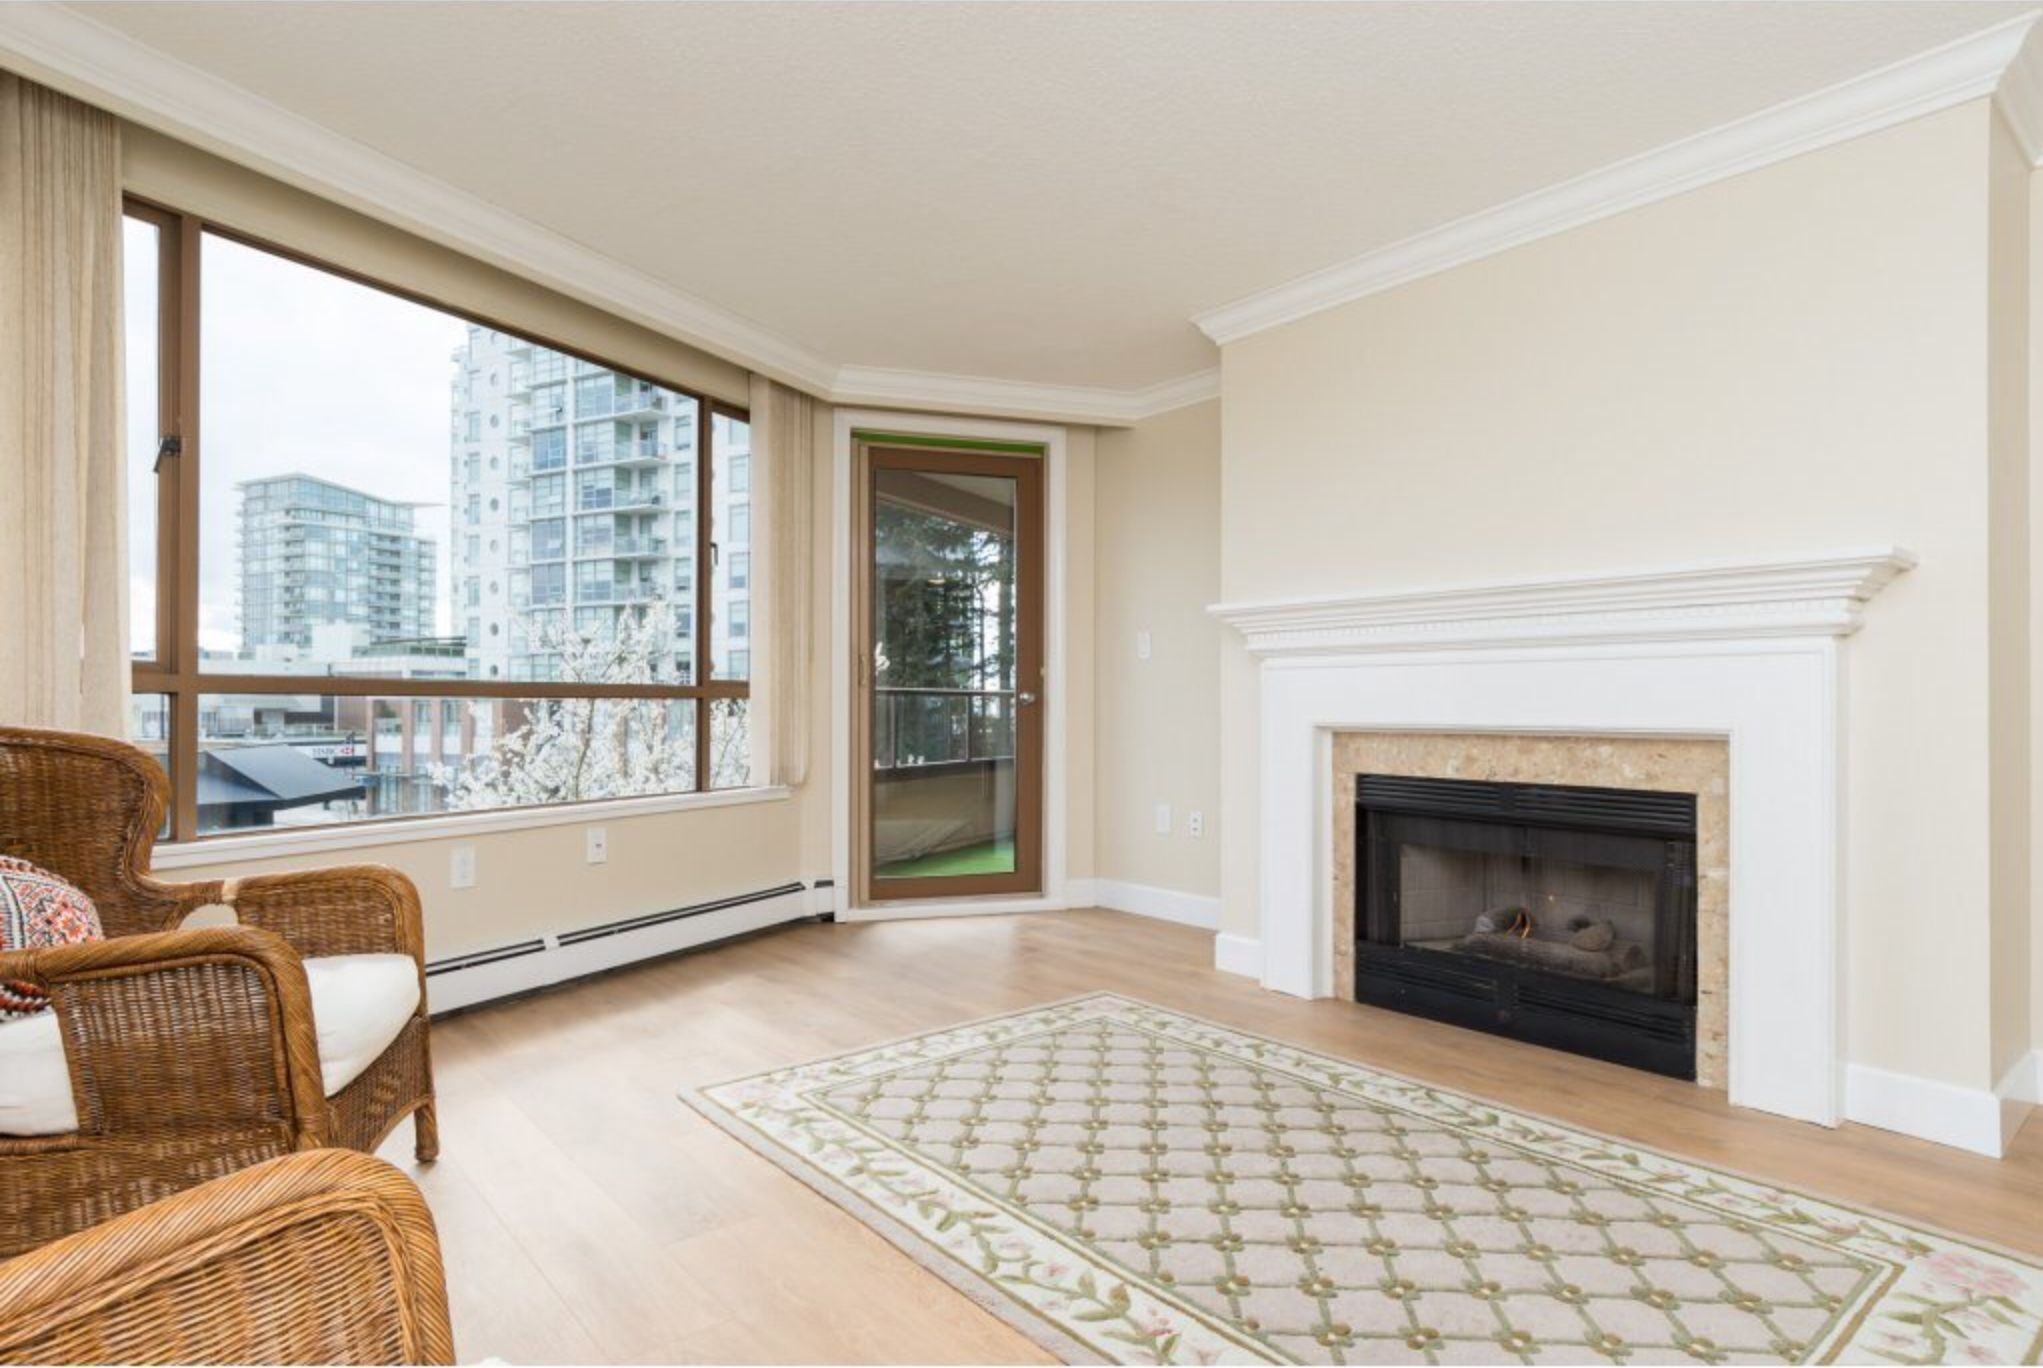 Photo 6: Photos: 410, 15111 Russell Avenue: White Rock Condo for sale (South Surrey White Rock)  : MLS®# R2152299